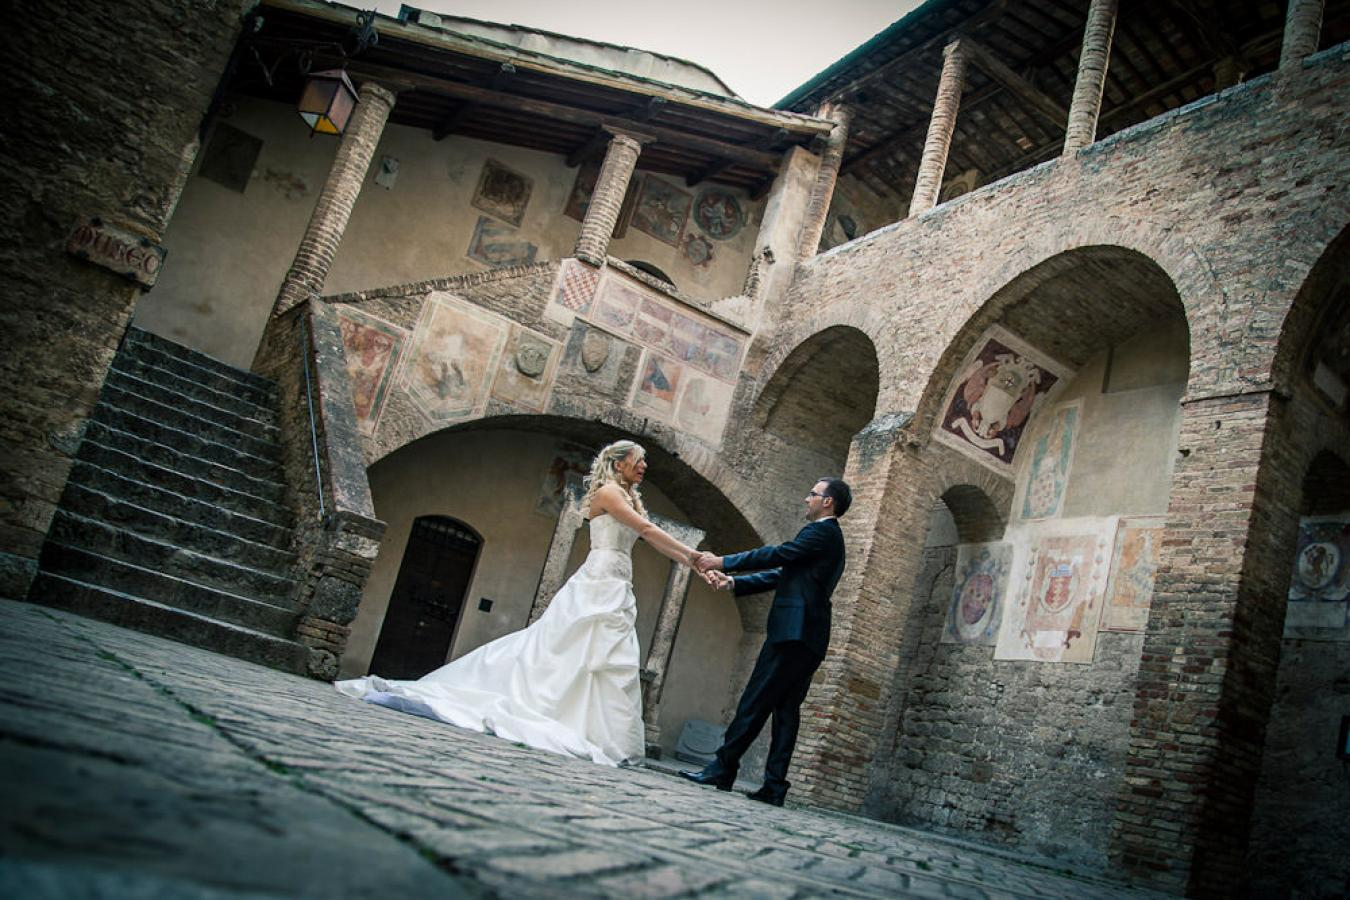 foto 7 Wedding Photography in Tuscany - San Gimignano with Giacomo and Irene